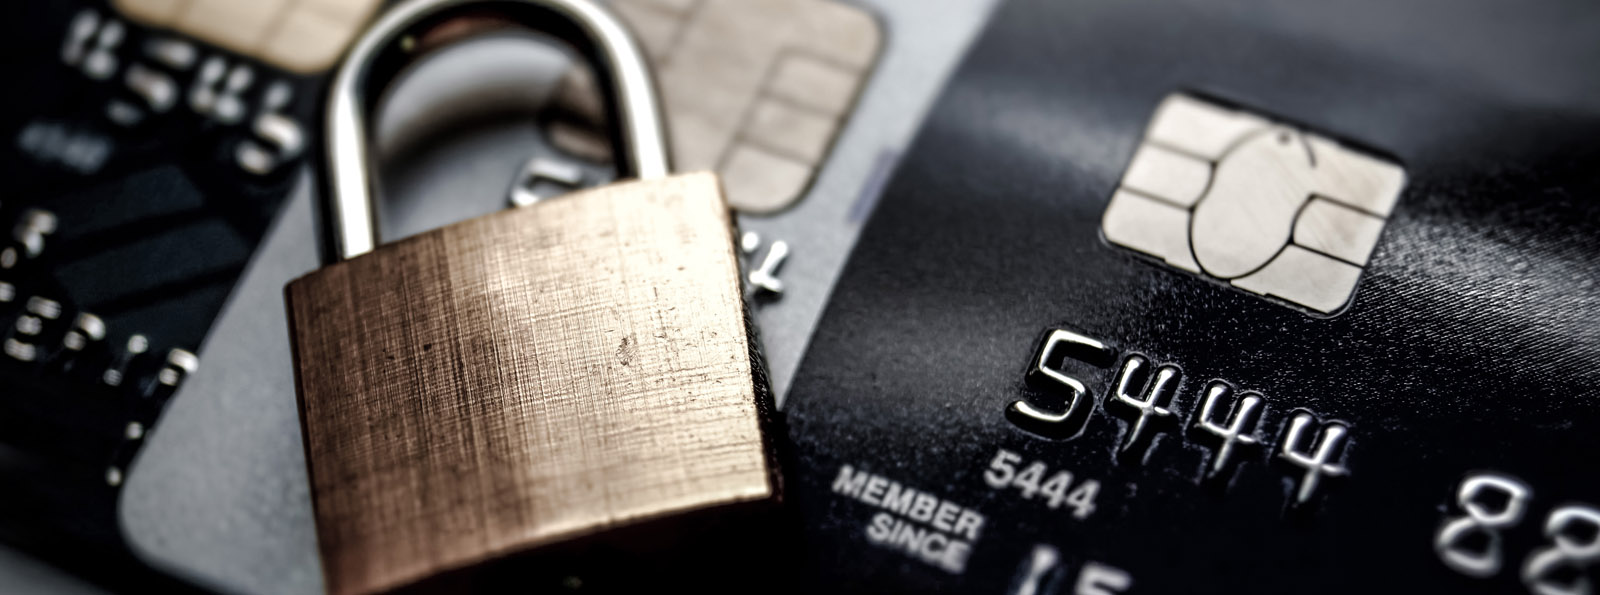 padlock lying on an array of debit/credit cards